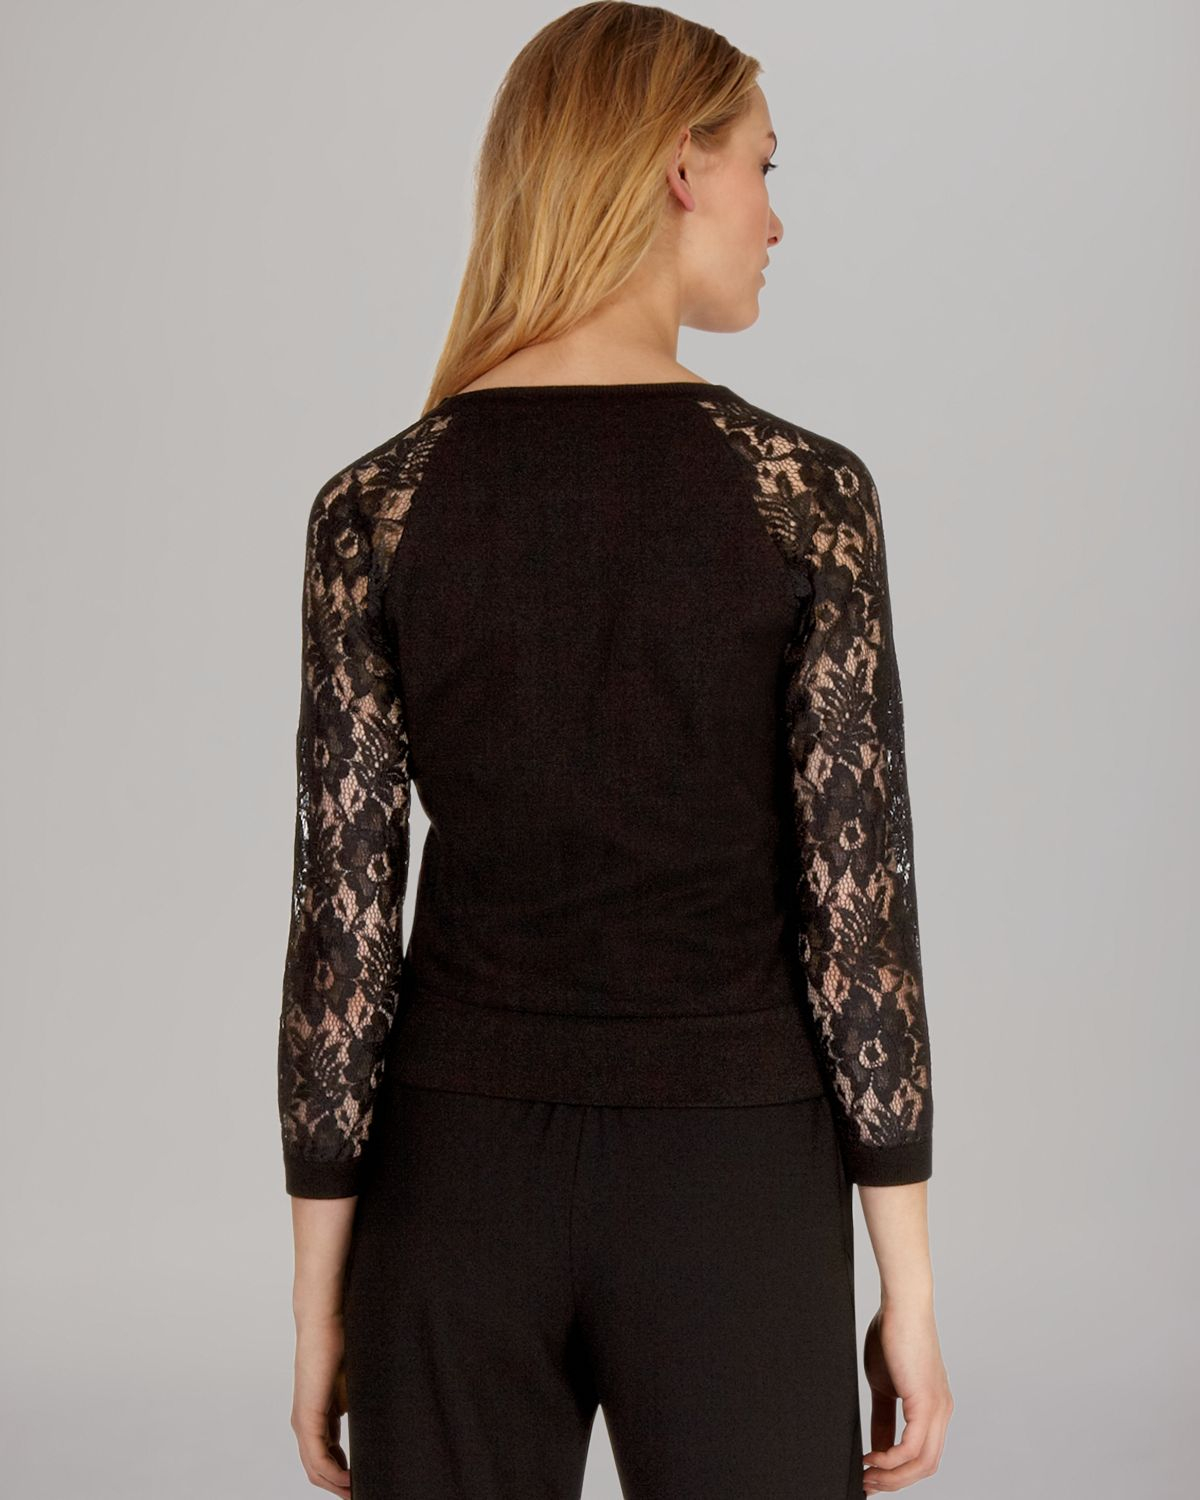 Karen millen Cardigan Knit Lace Sleeve in Black | Lyst